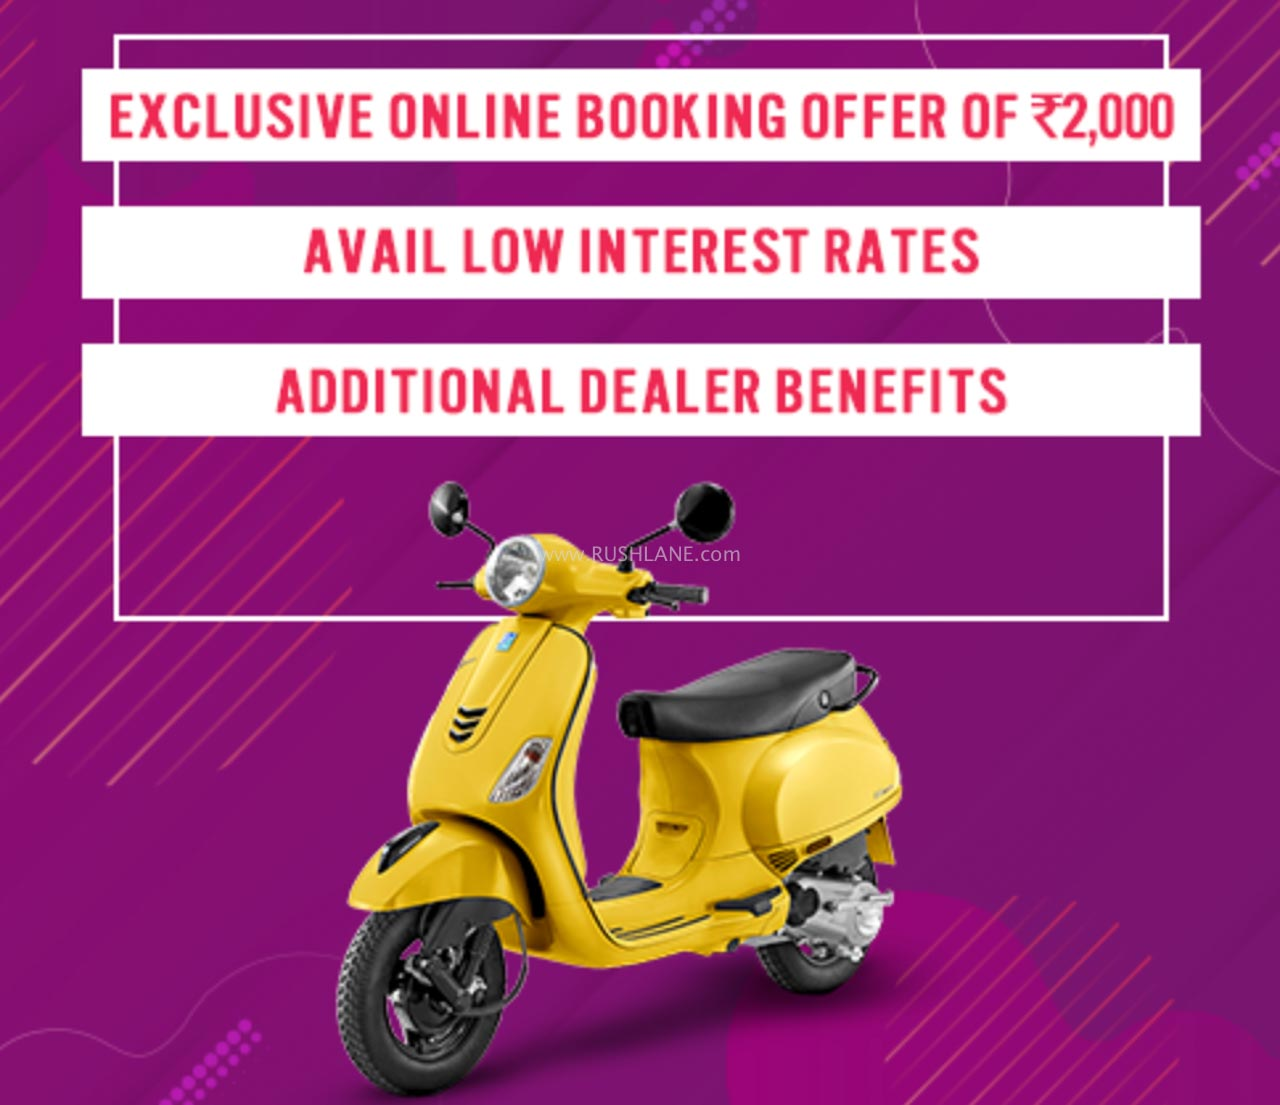 Vespa, Aprilia scoters online sales, new benefits and offers launched